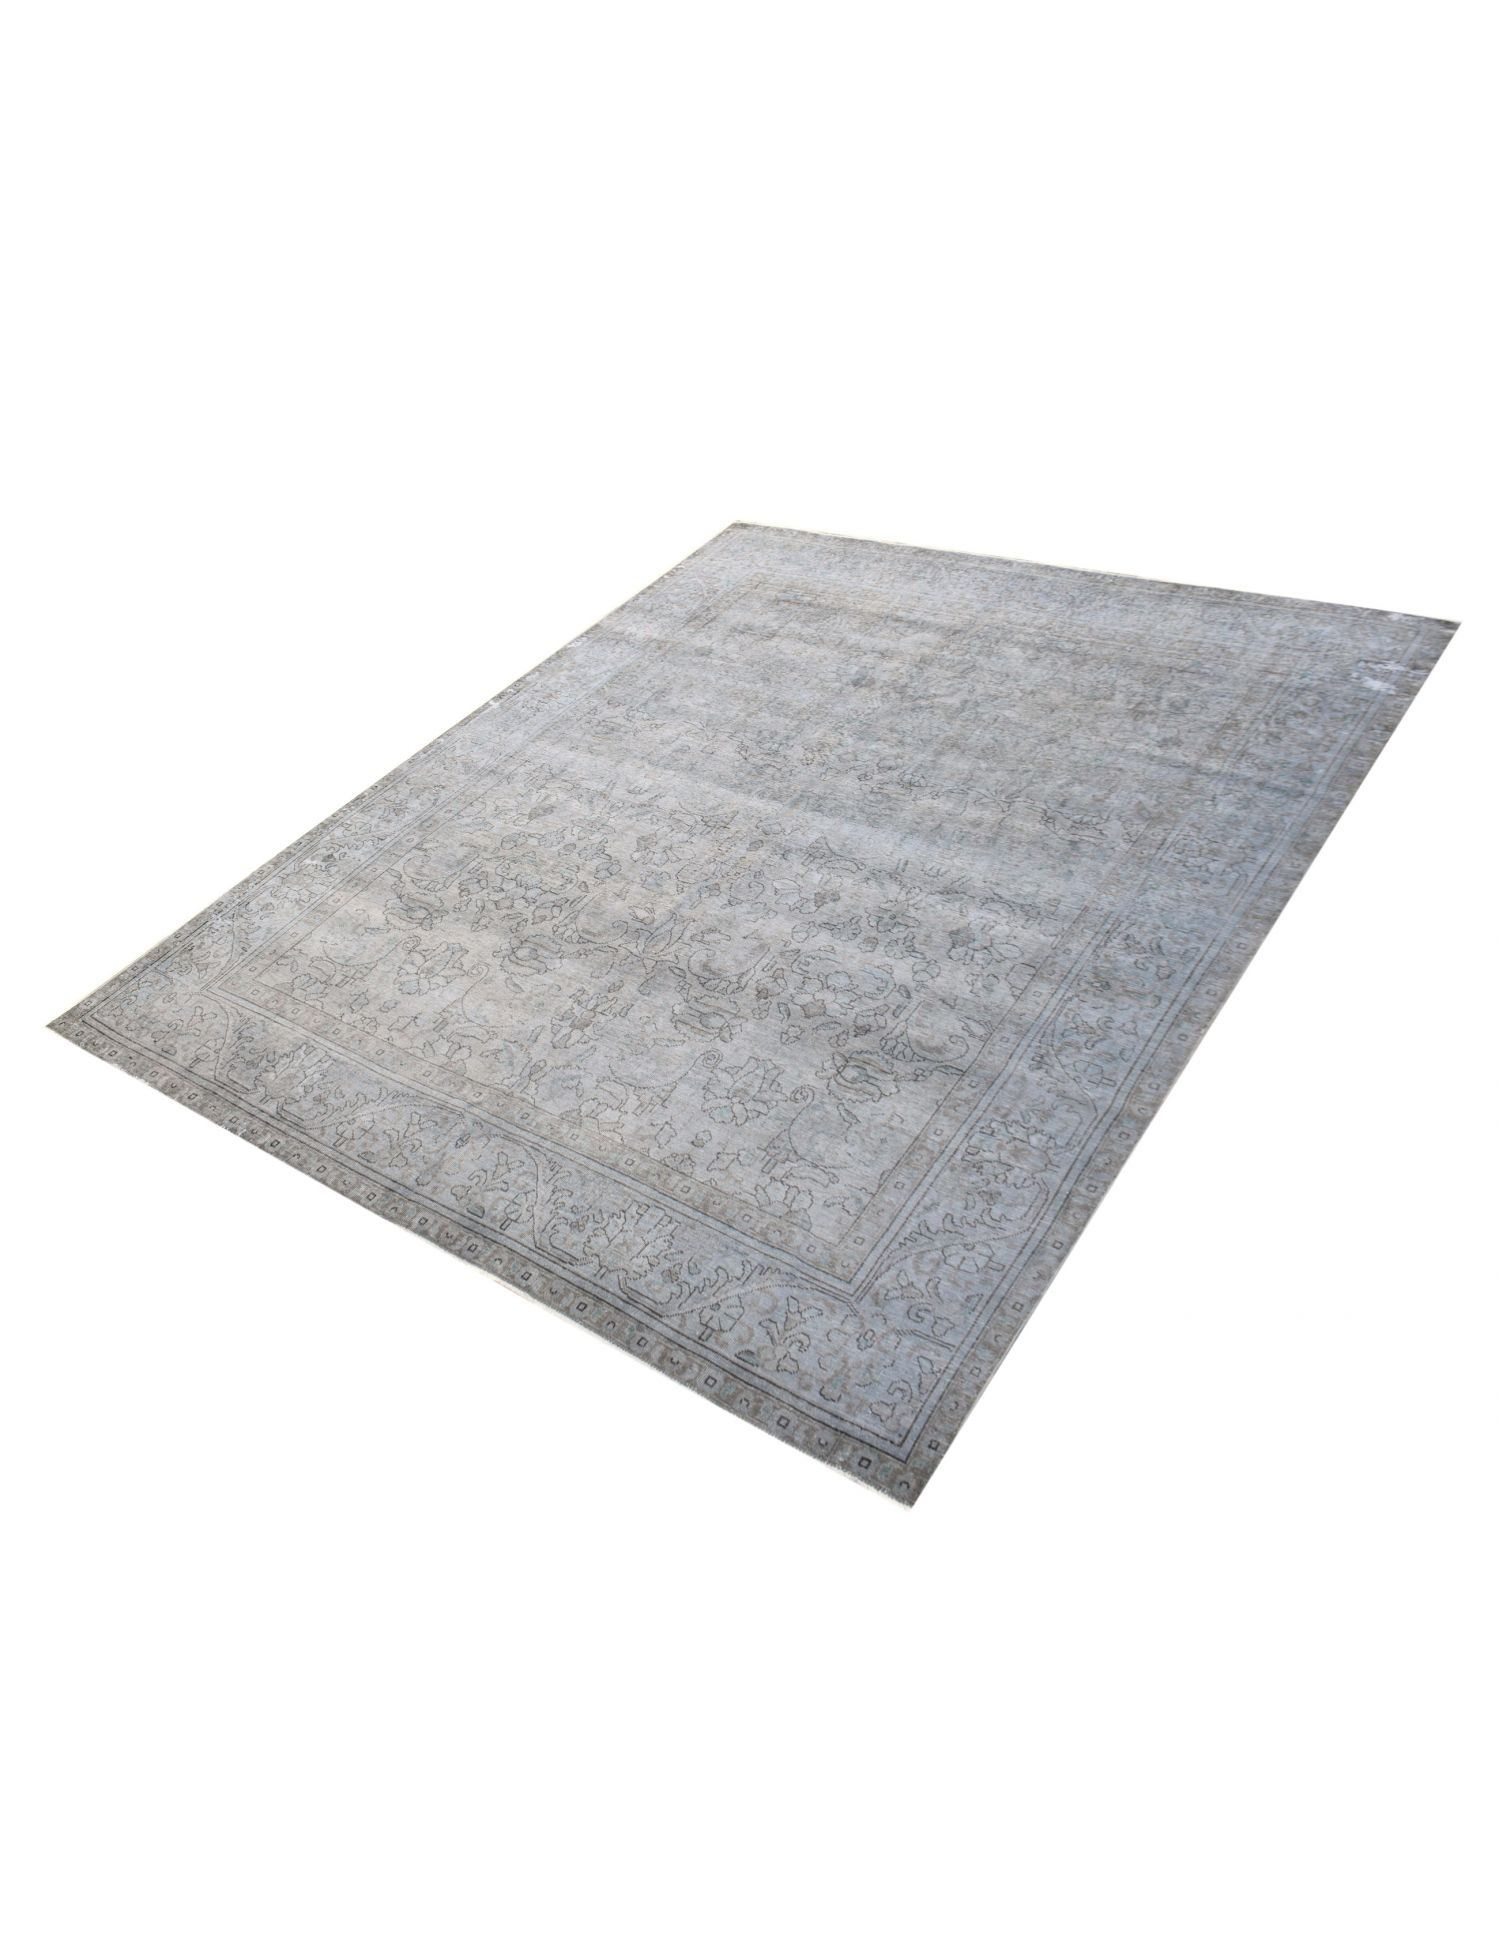 Vintage Carpet  grey <br/>375 x 293 cm